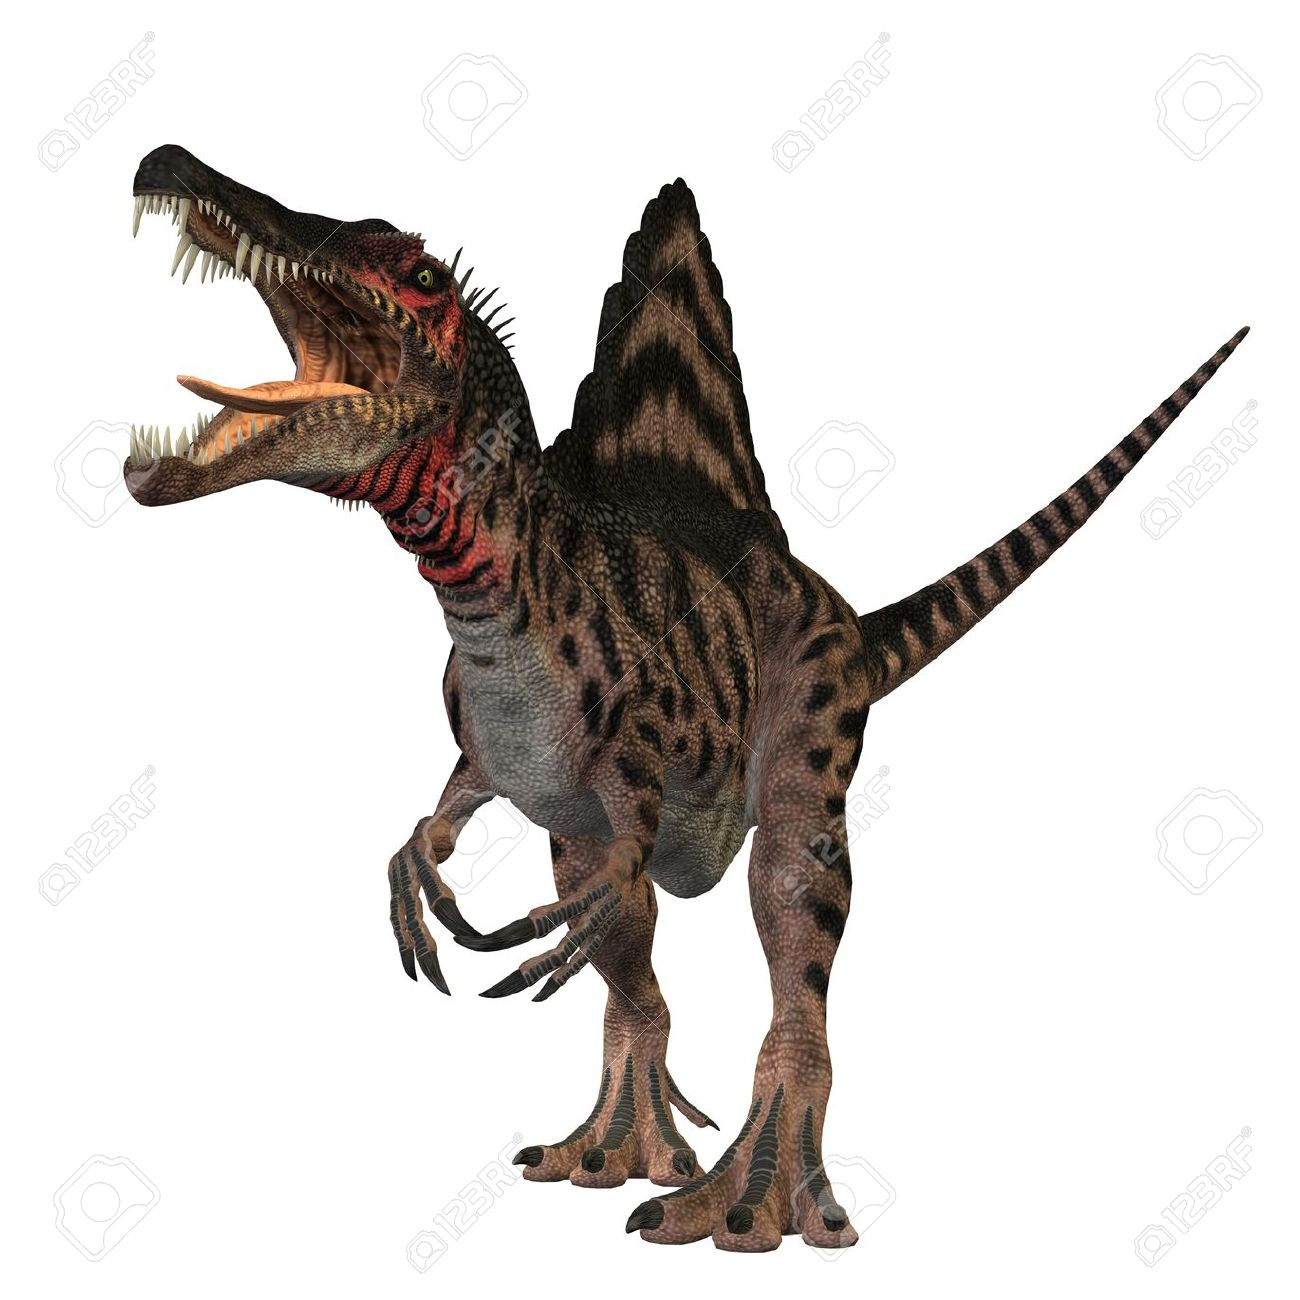 Spinosaurus clipart #4, Download drawings